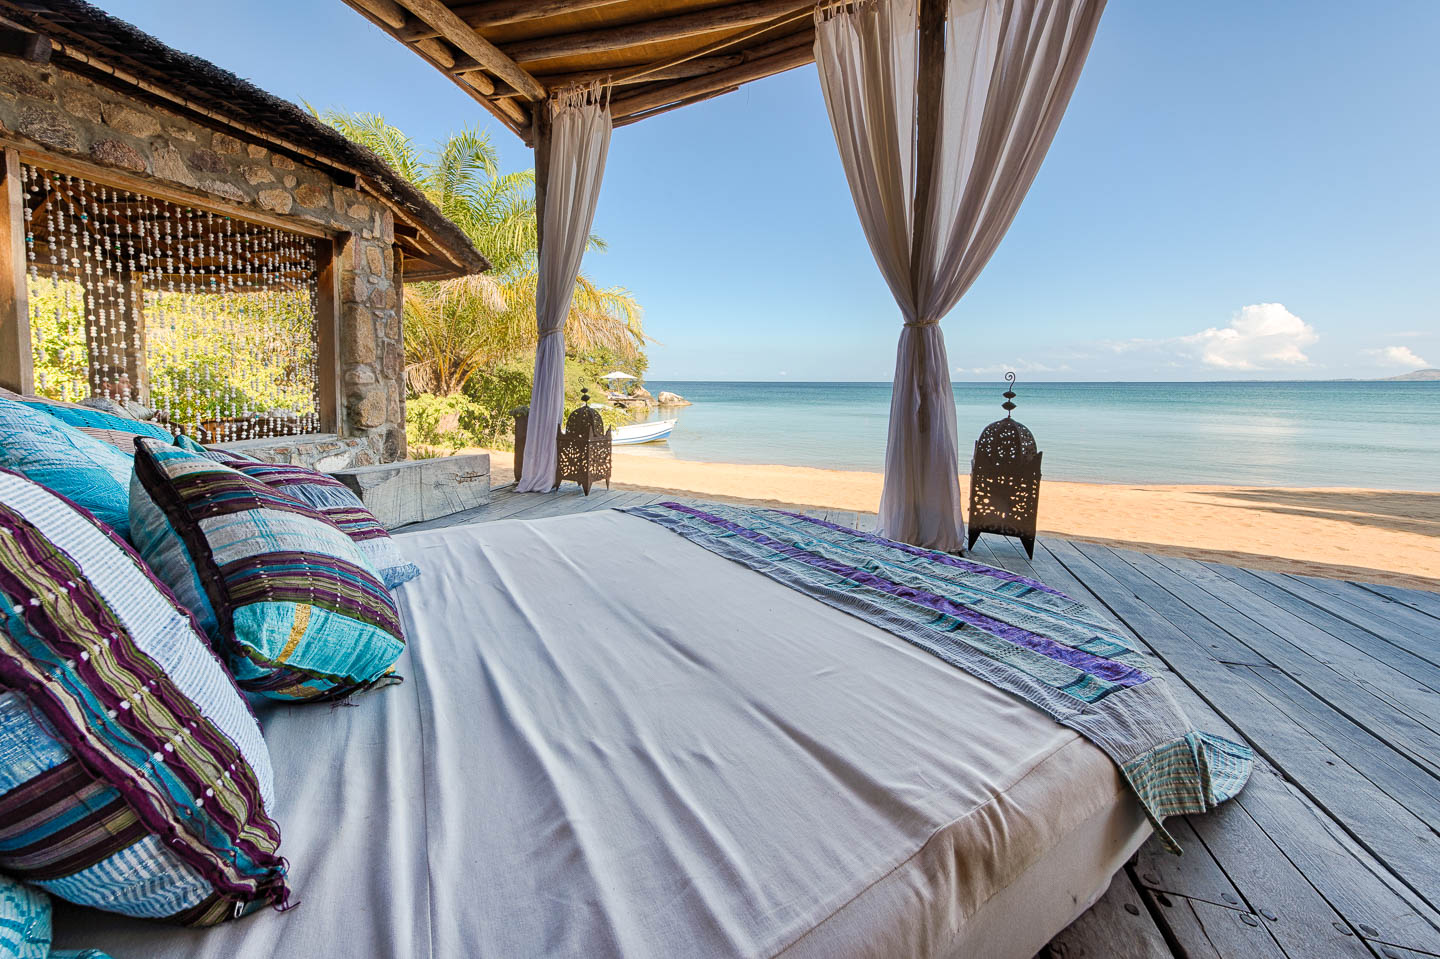 romantic lodges in Africa kaya mawa deck lounge romantic malawi